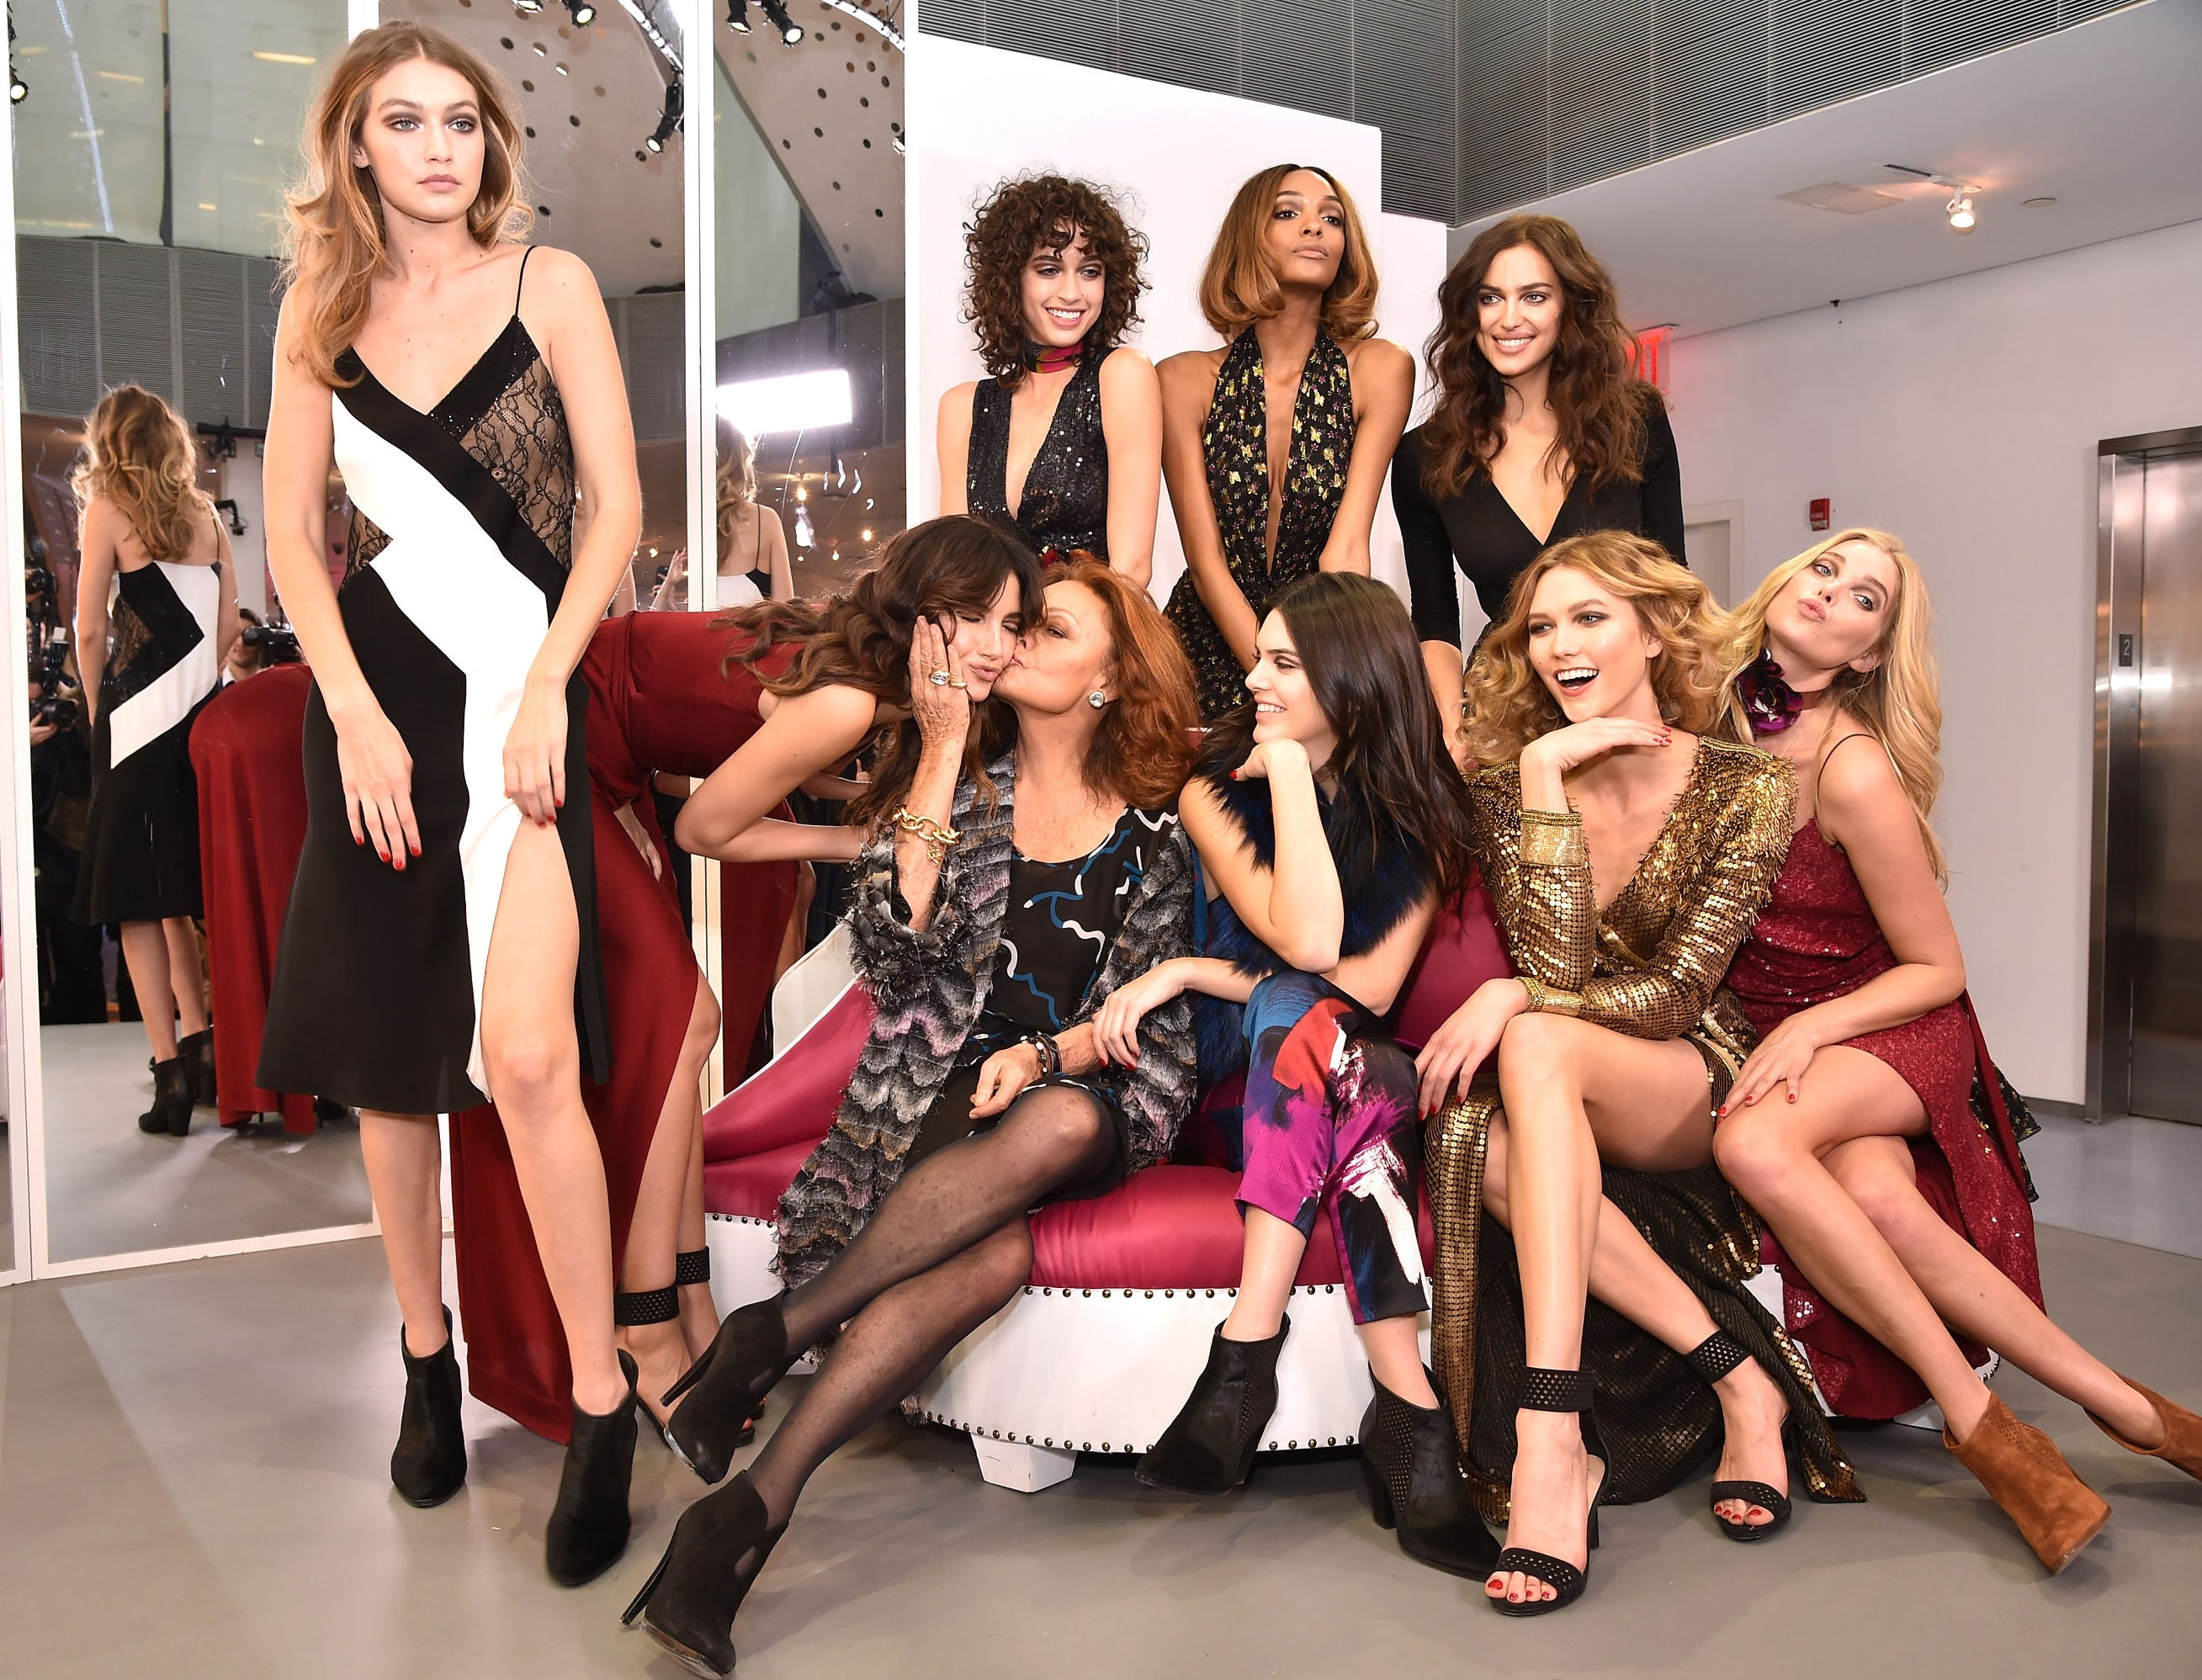 (Back row, left to right) Gigi Hadid, Lily Aldridge, Alanna Arrington, Jourdan Dunn, Irina Shayk, (front row, left to right) Diane Von Furstenberg, Kendall Jenner, Karlie Kloss and Elsa Hosk pose wearing Diane Von Furstenberg Fall 2016 fashion wear during New York Fashion Week on Feb. 14, 2016, in New York City.